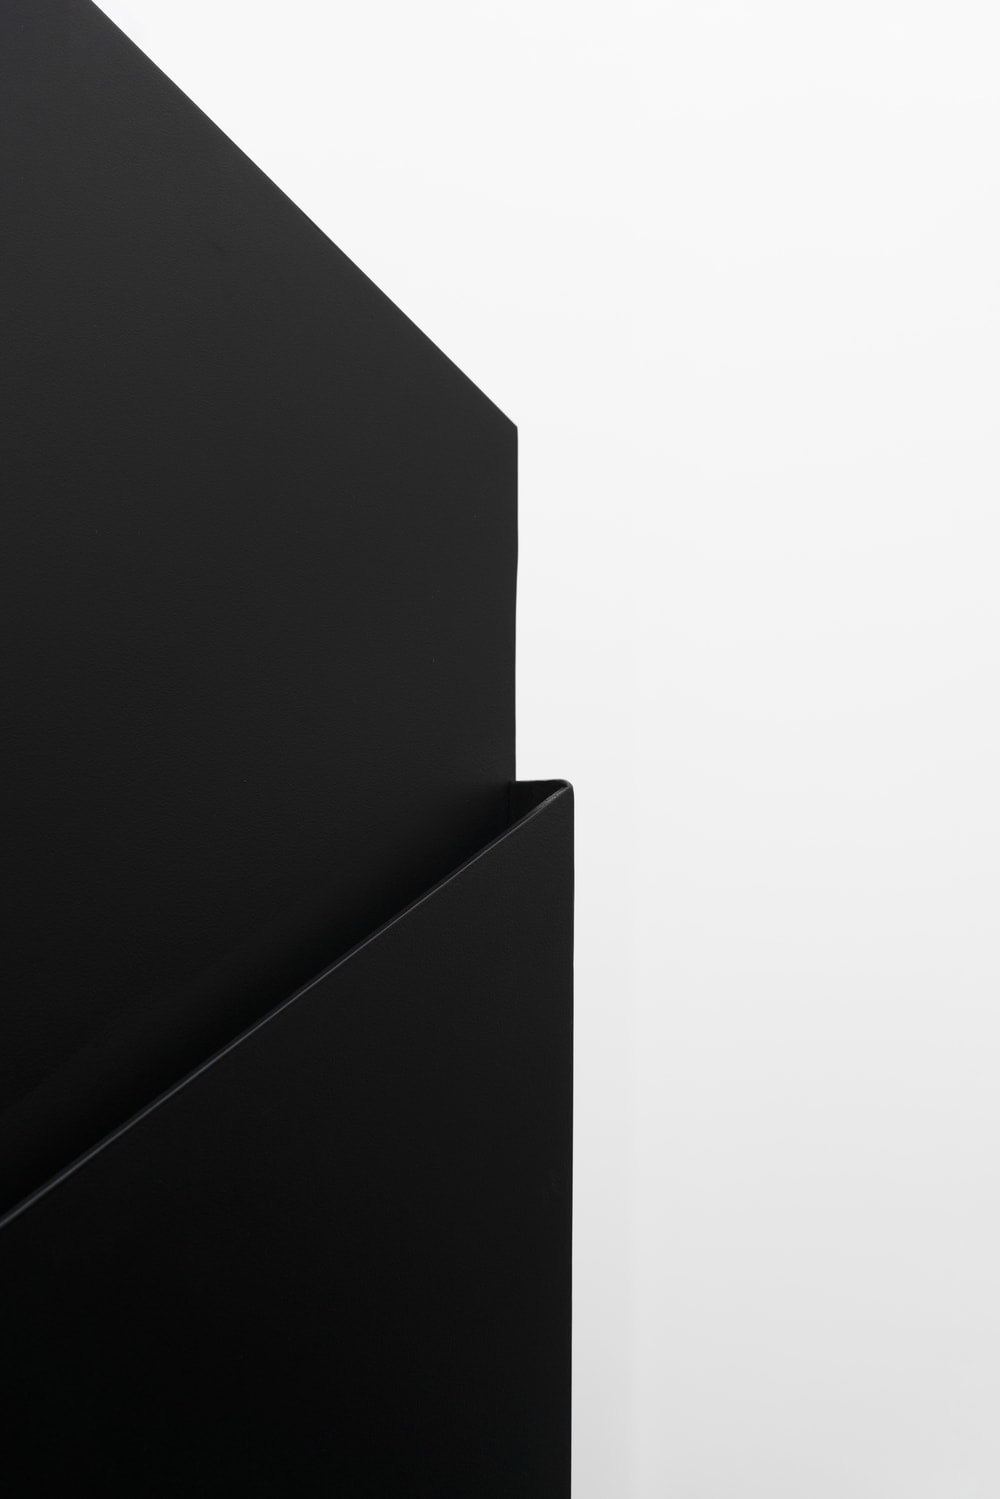 This is a close look at the side of the staircase with a thin black panel that serves as the handle of the stairs.